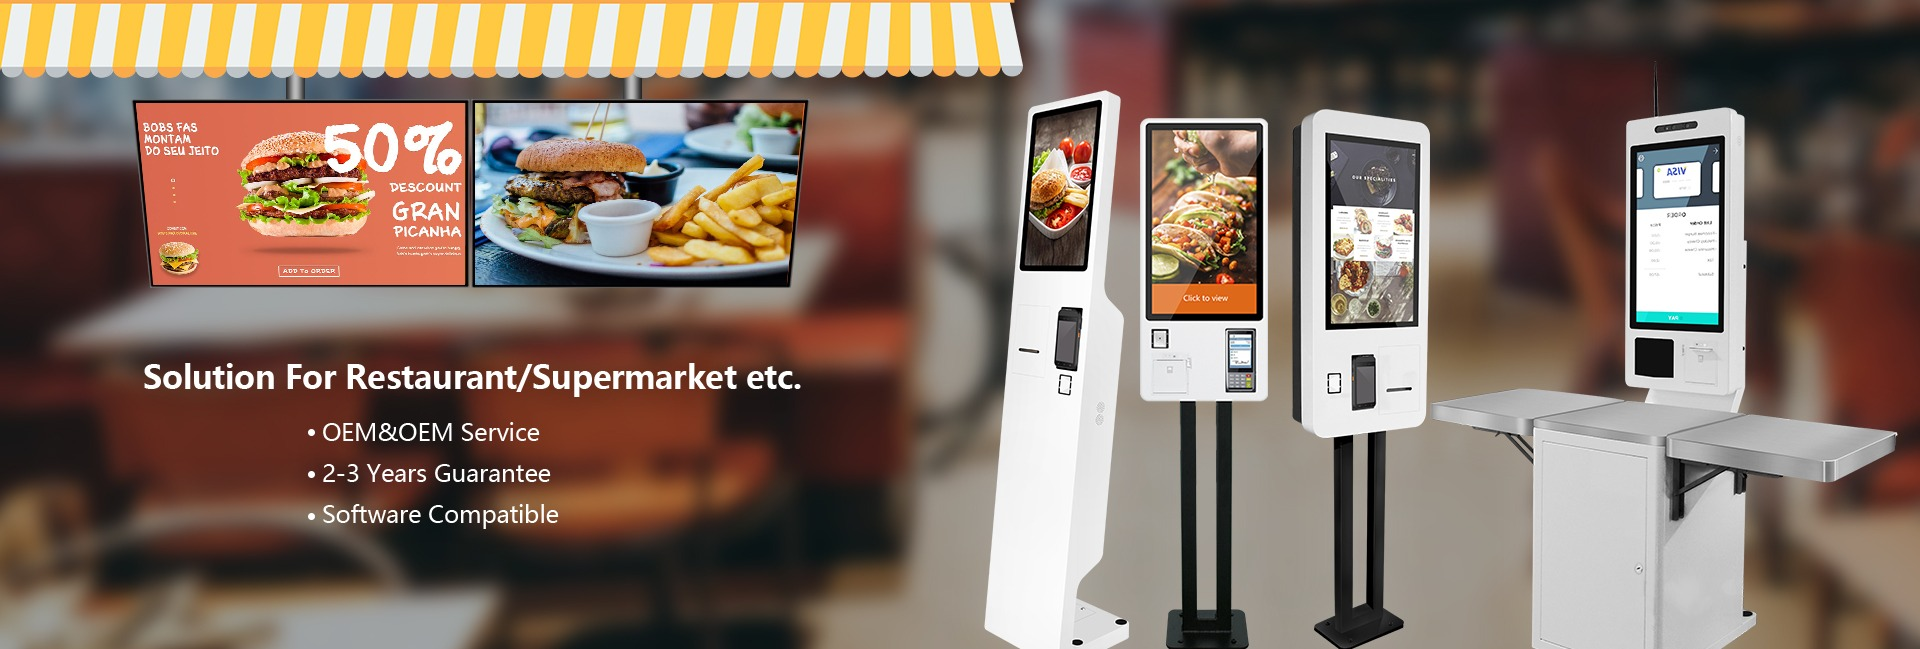 pos pizza Digital Screens and self order kiosk